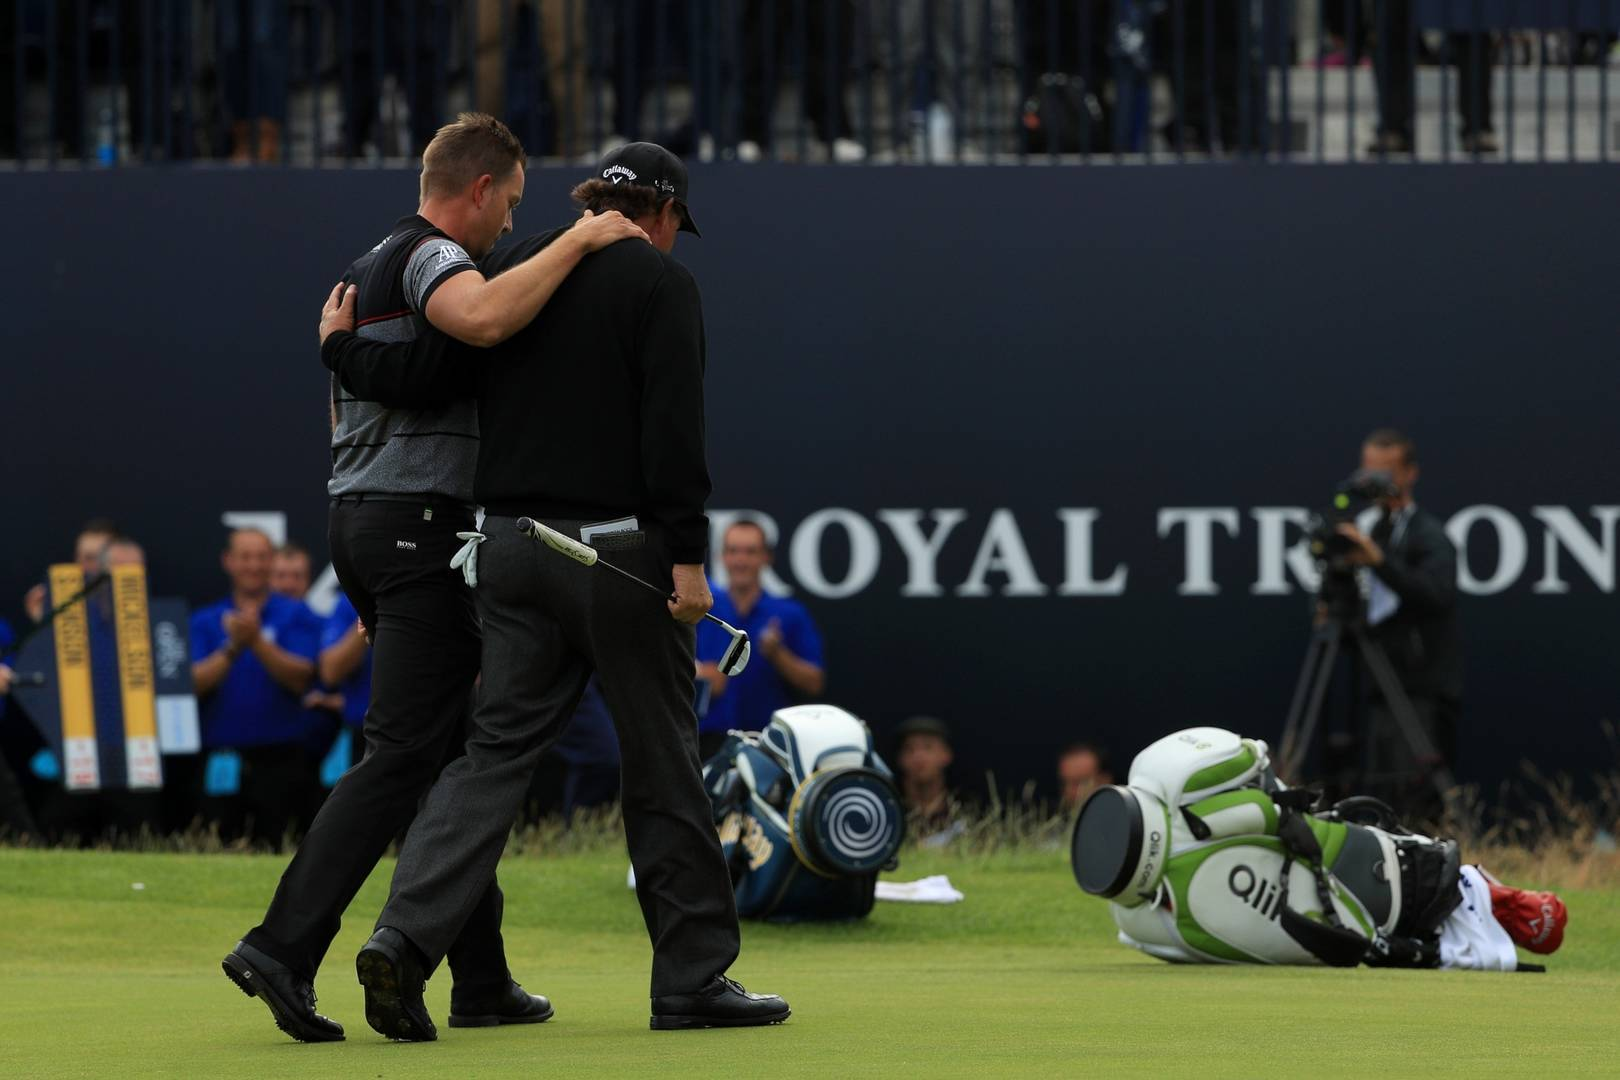 Henrik Stenson and Phil Mickelson at Royal Troon